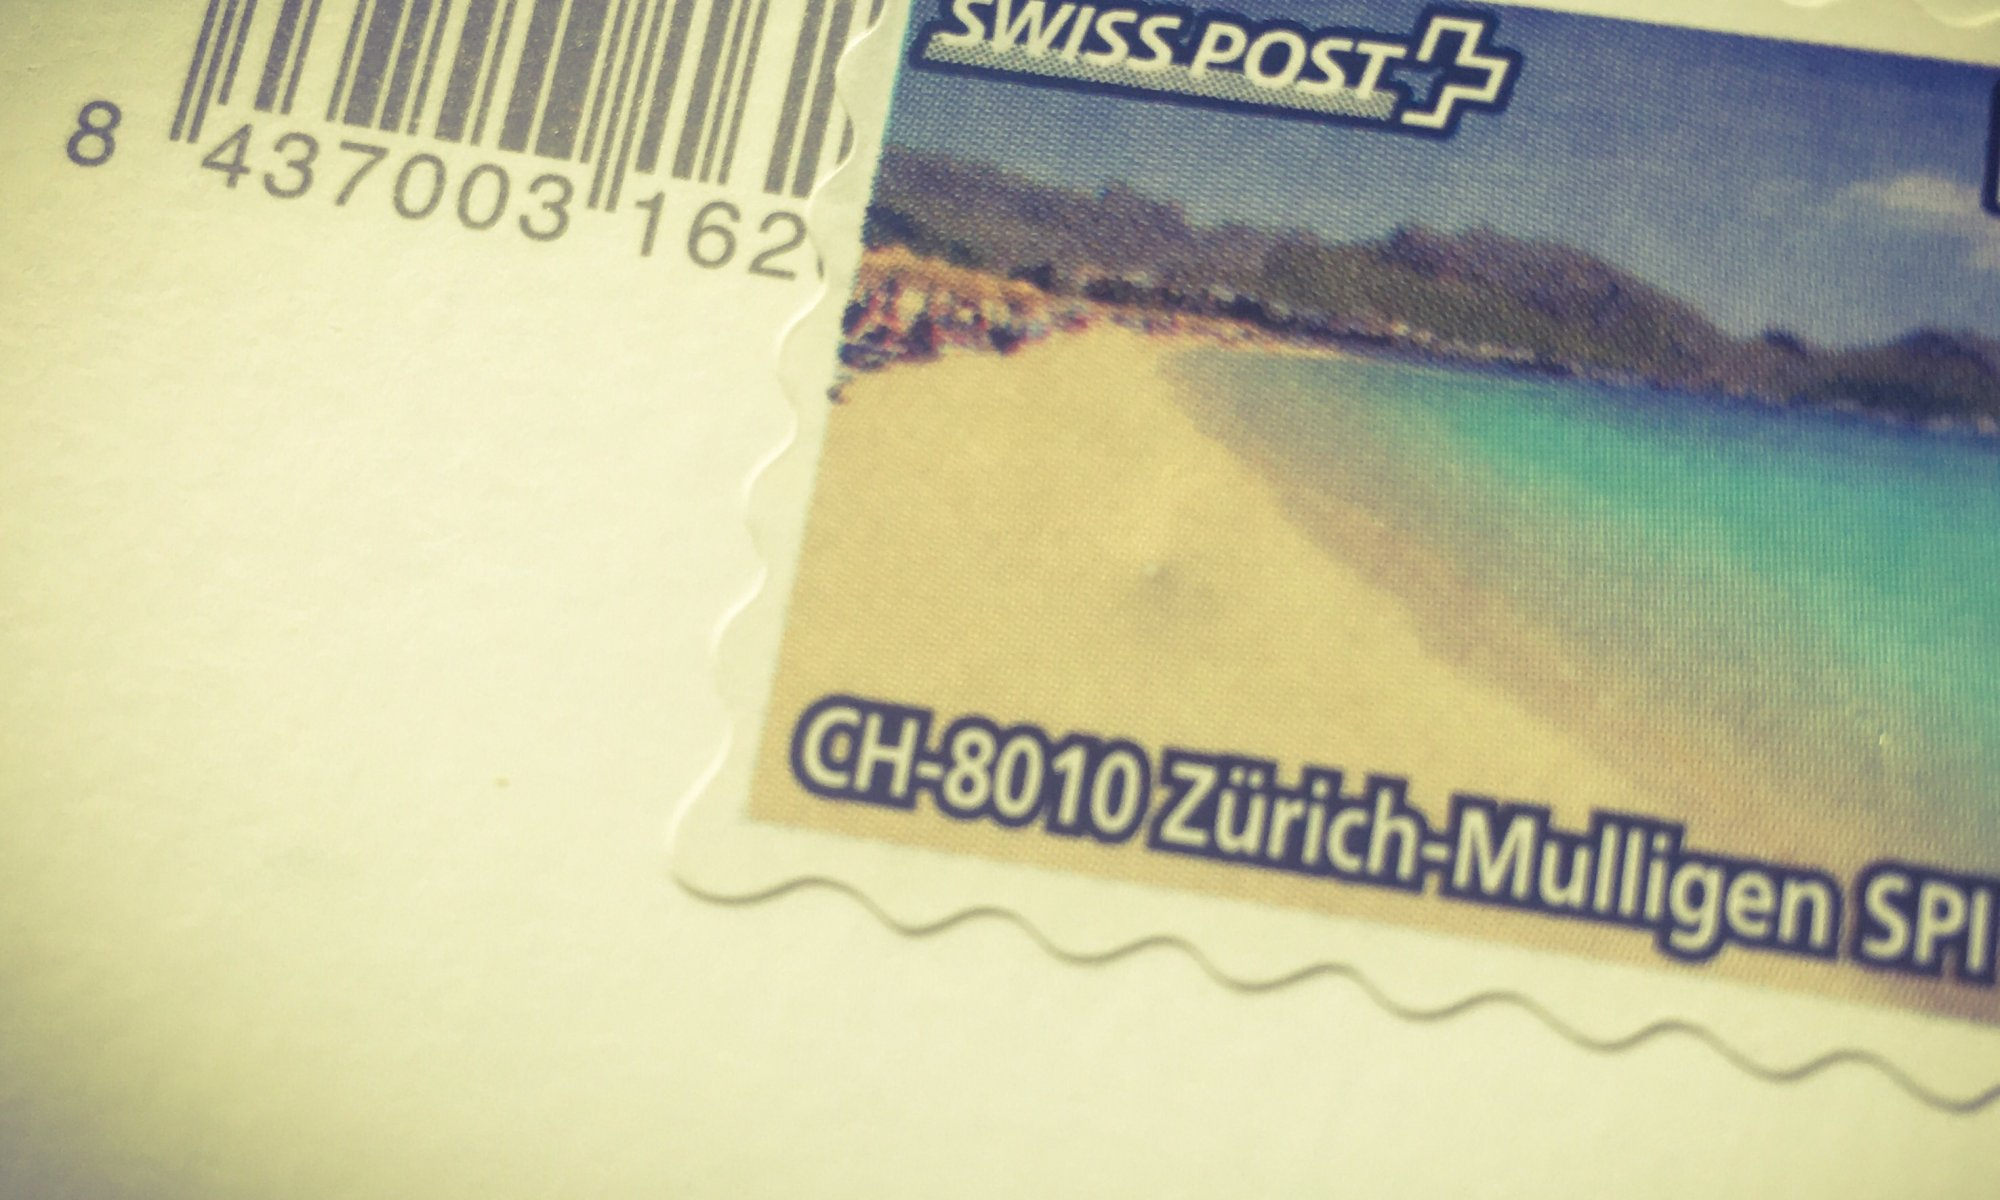 Swiss post, Mallorca